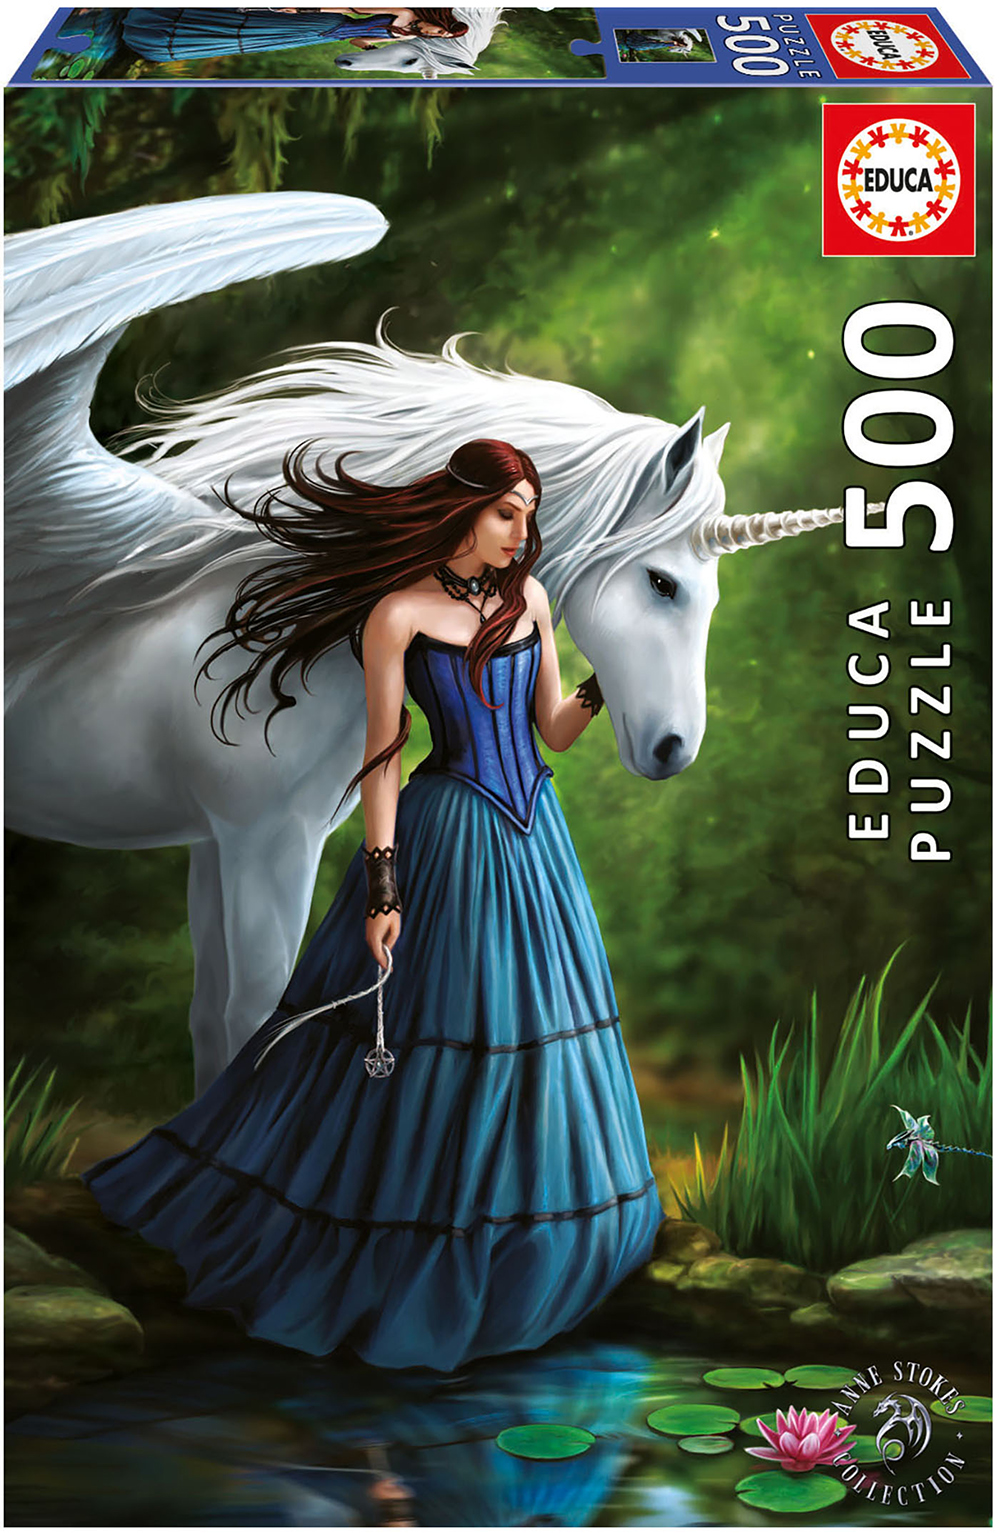 500 pieces puzzle - Enchanted pool Anne Stokes